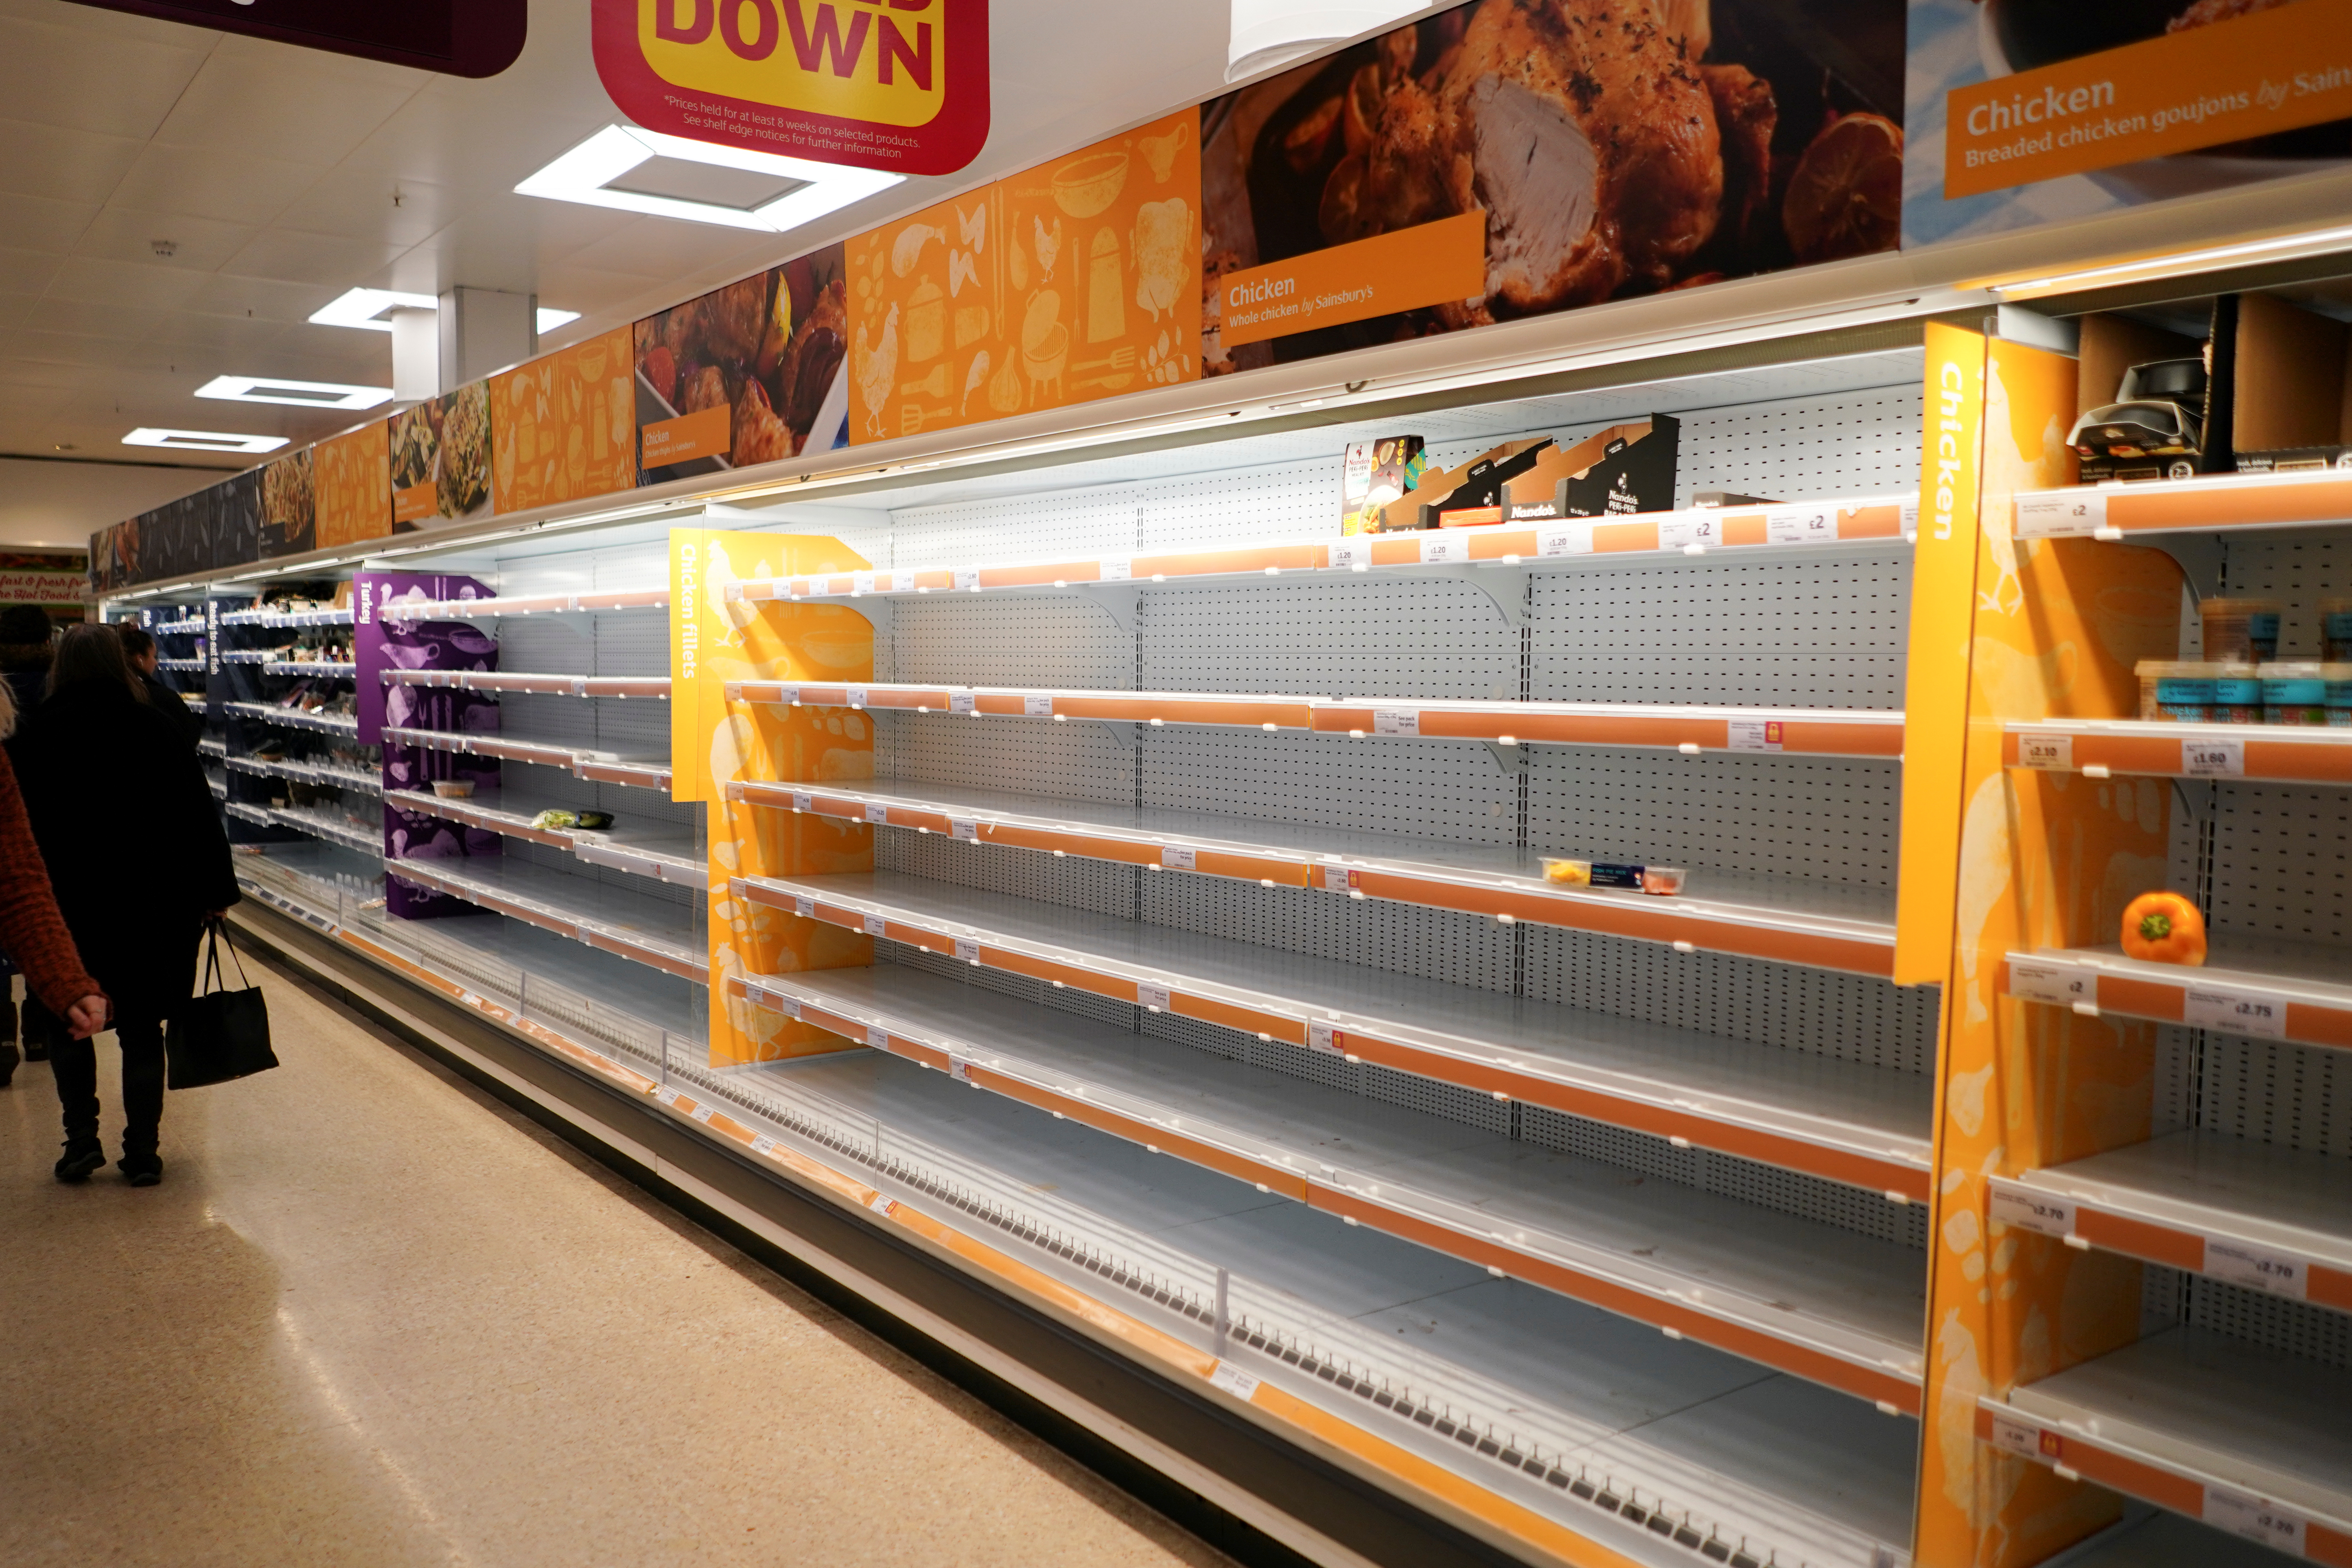 Shelves empty of fresh chicken in a supermarket, as the number of worldwide coronavirus cases continues to grow,  in London, Britain, March 15, 2020. REUTERS/Henry Nicholls